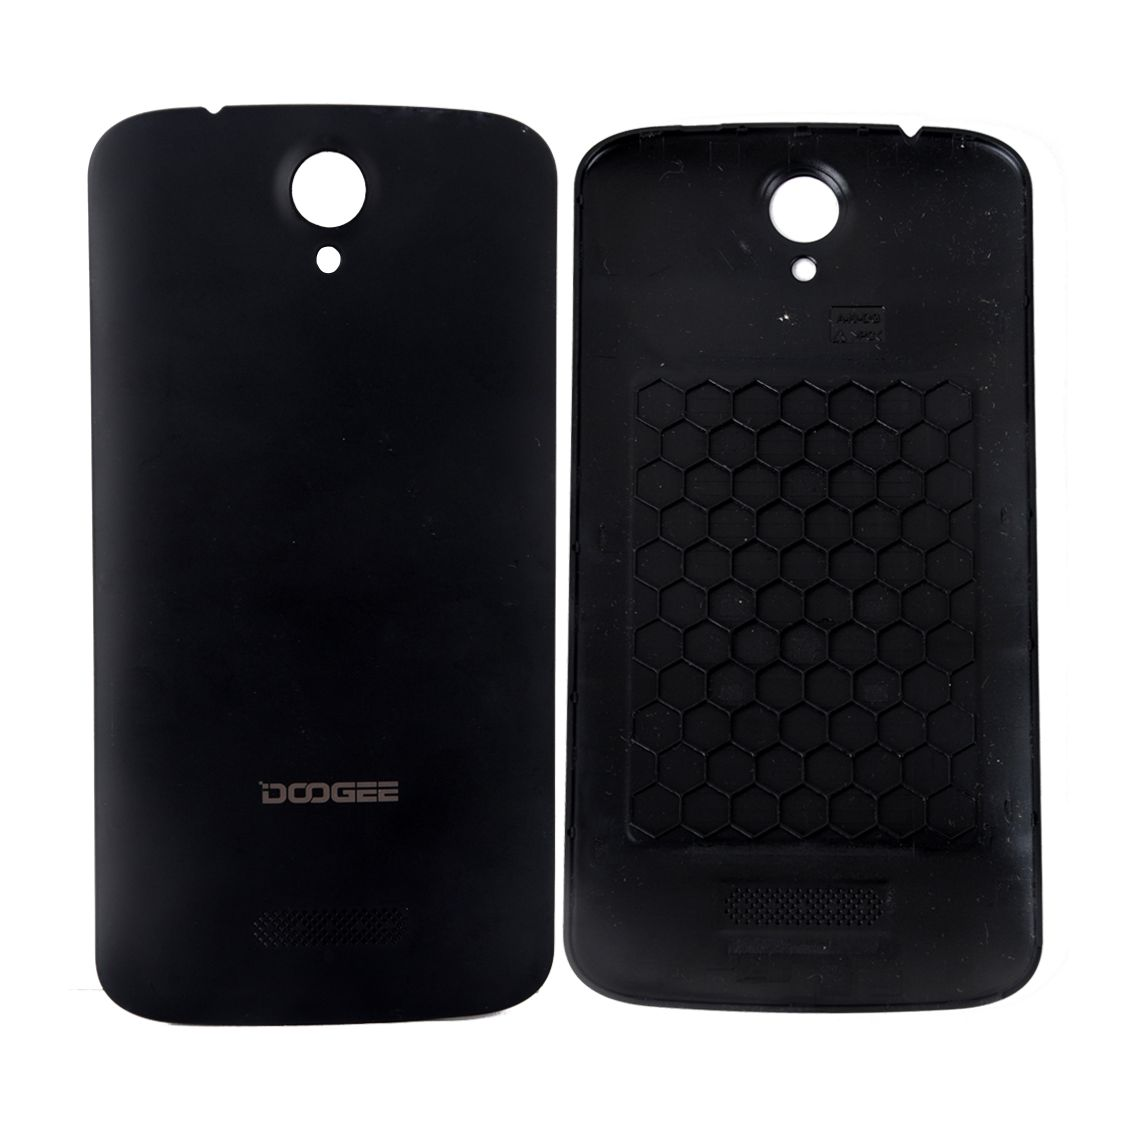 DOOGEE Battery Cover για Smartphone X6, Black - DOOGEE 10093